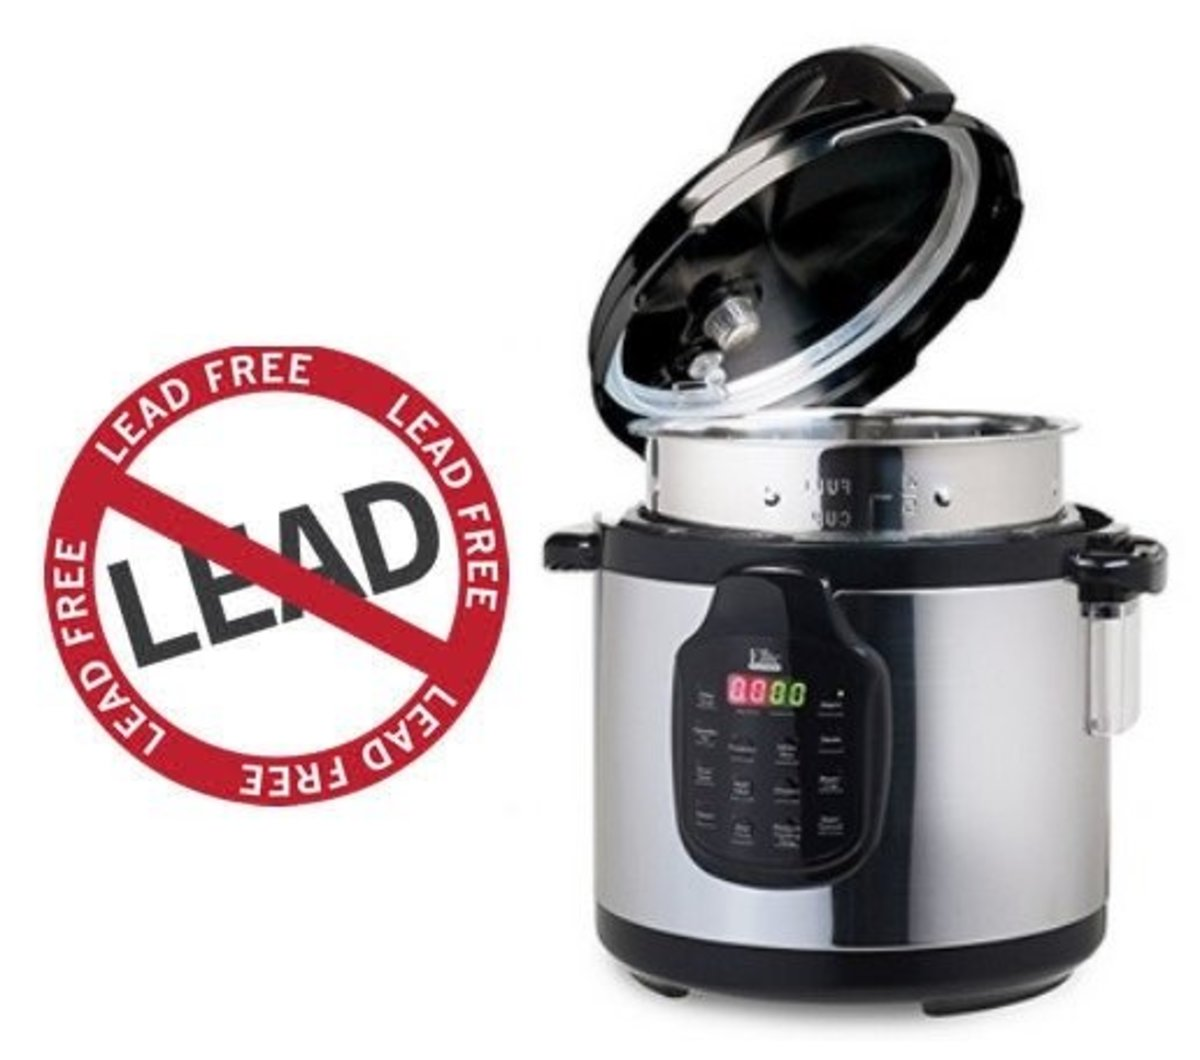 The Best Lead-Free Slow Cookers and Crock Pots for the Kitchen